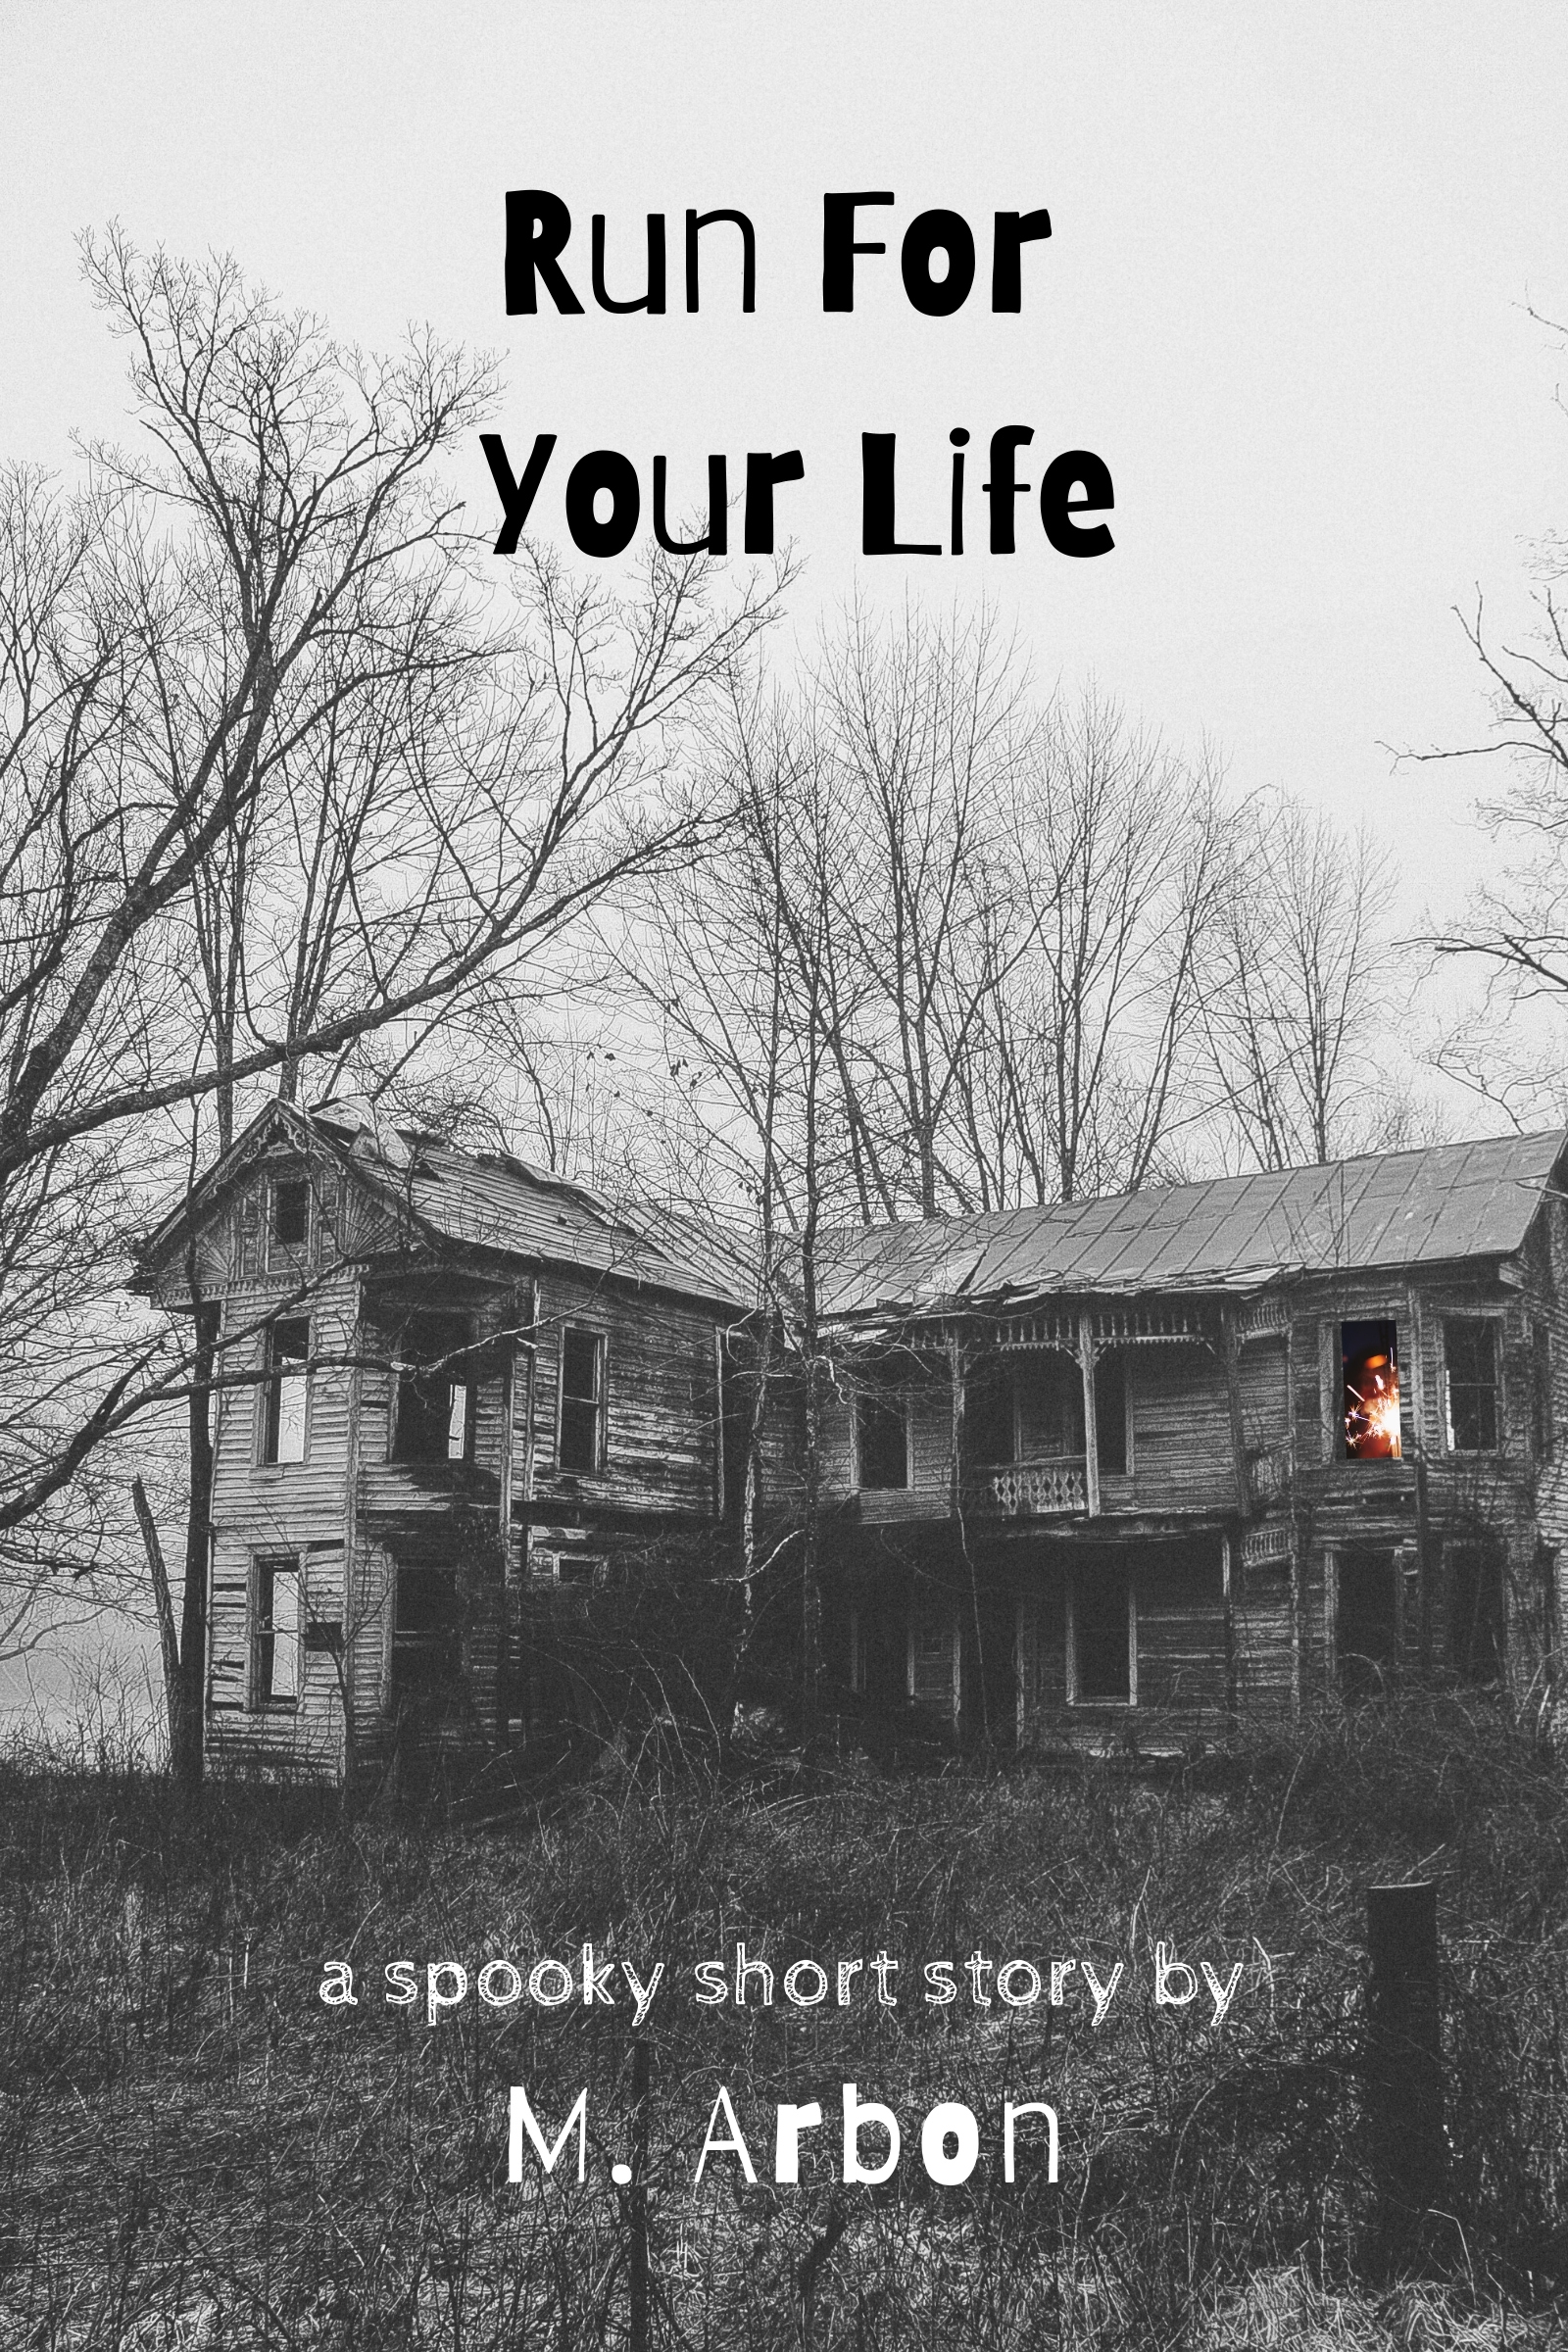 Cover of Run For Your Life, showing a decrepit house with fire in one window